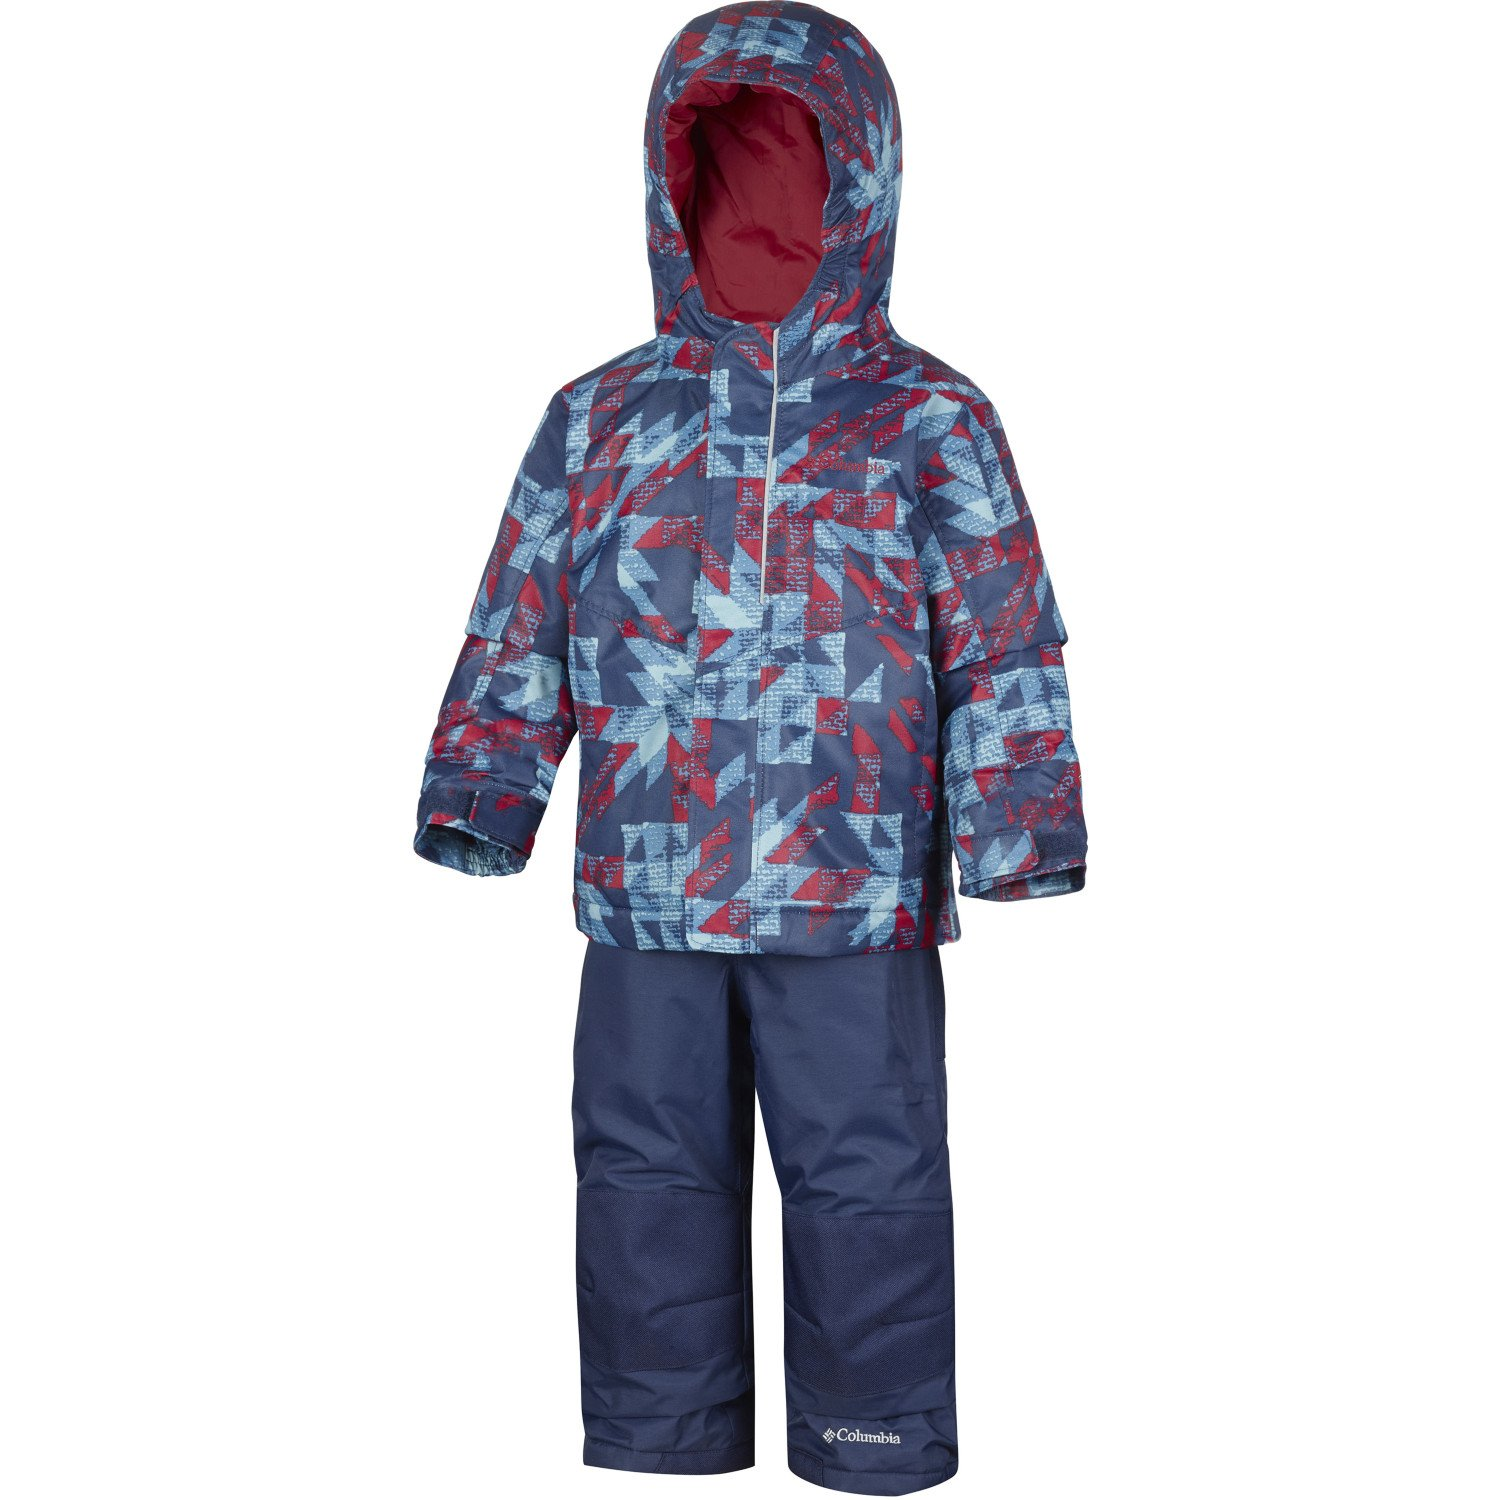 Columbia Buga Set Snowsuit 4T Collegiate Navy Checkers Print by Columbia